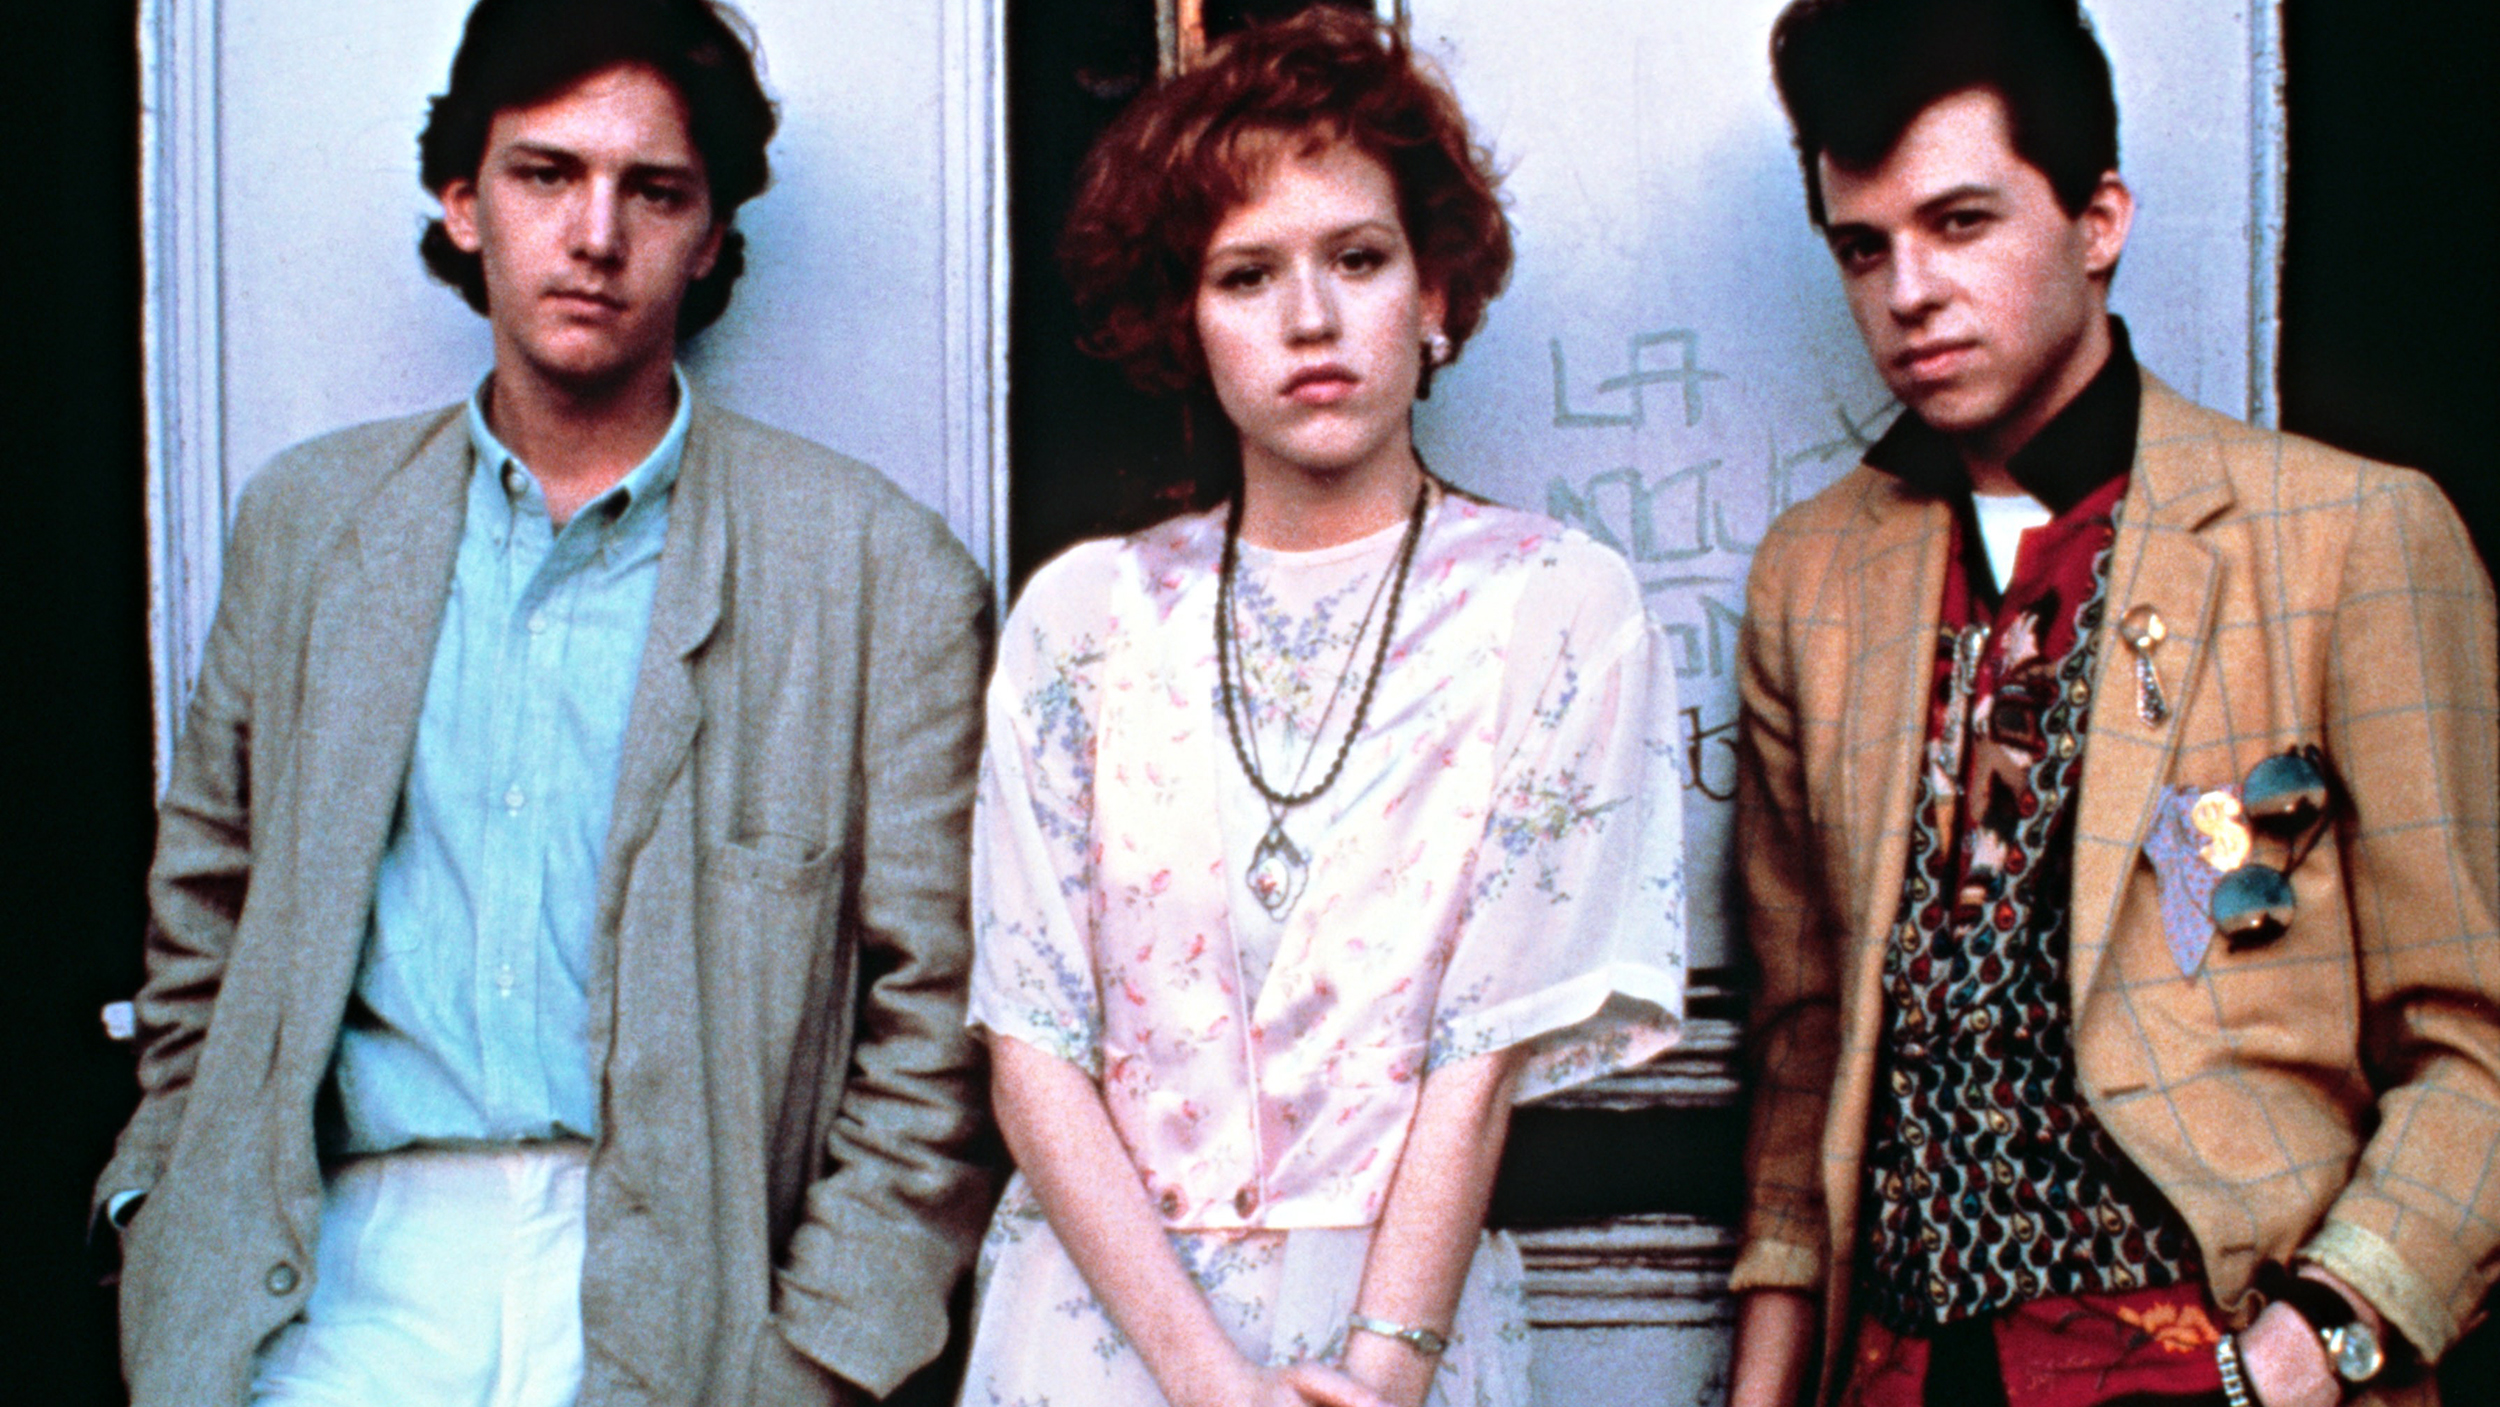 dd0ab1230b56 'Pretty in Pink' turns 30: Here are 17 surprising facts about the '80s  classic